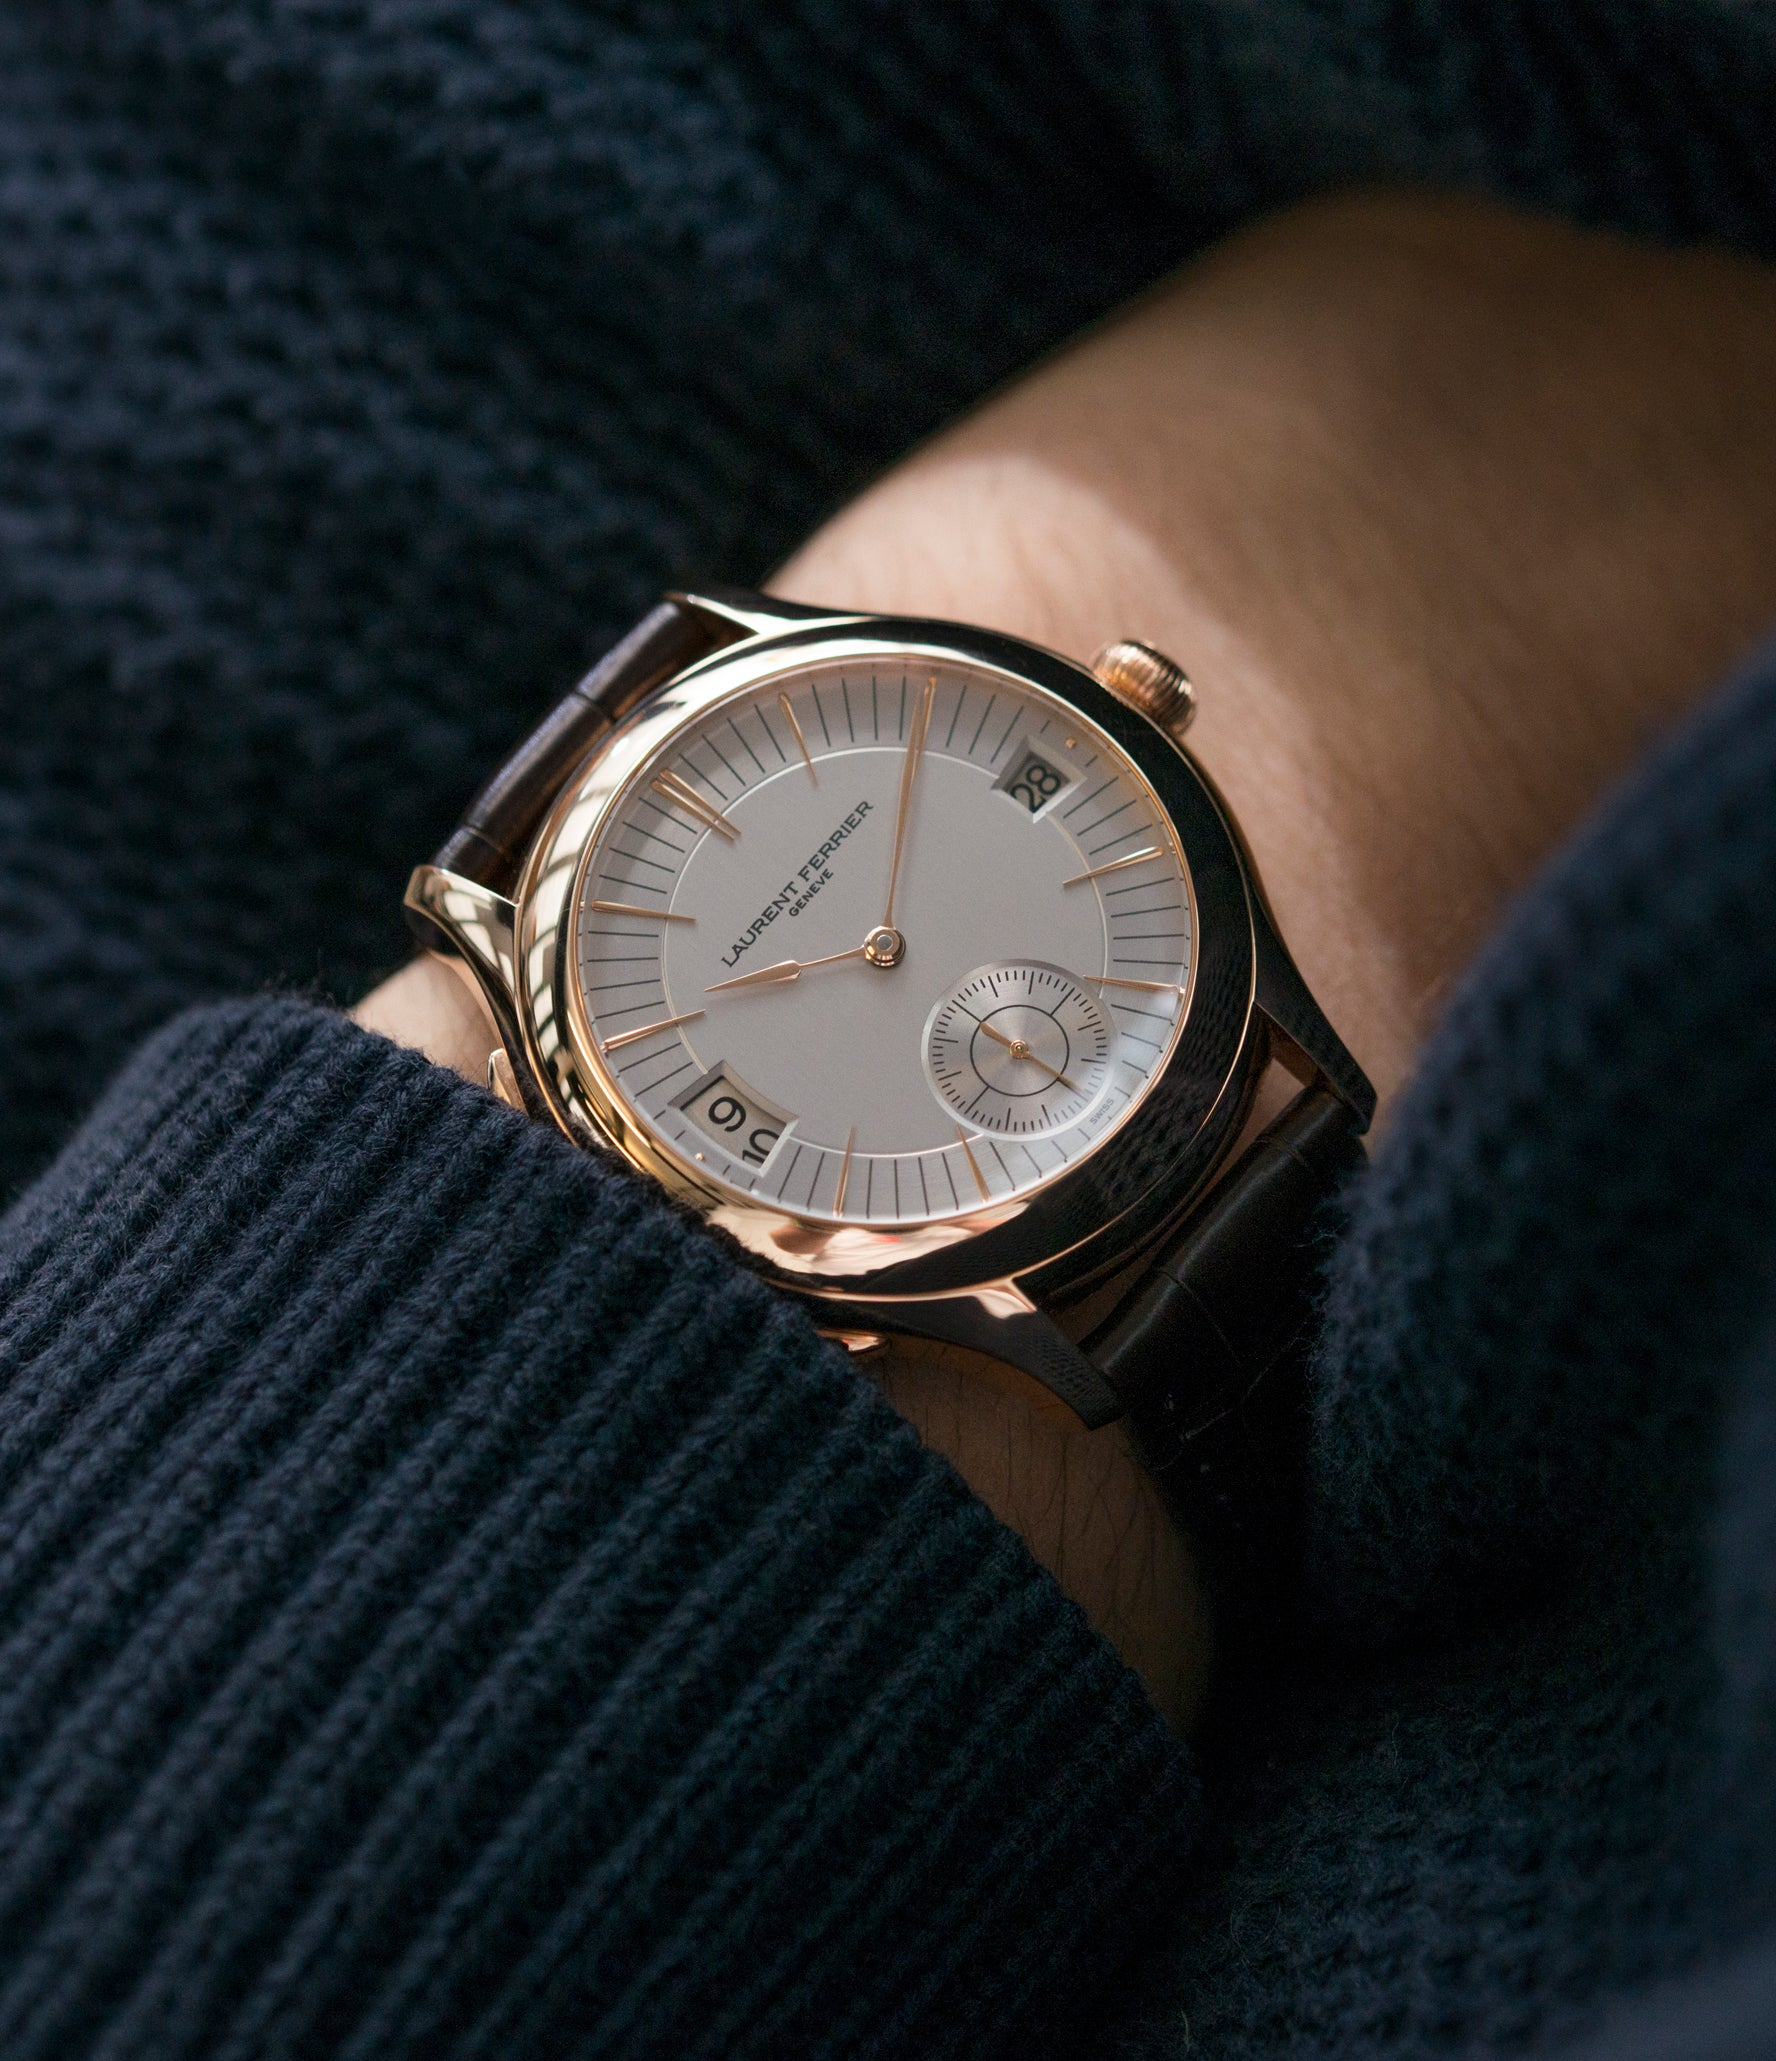 on the wrist Laurent Ferrier Galet Traveller Micro Rotor LF 230.01 rose gold watch additional prototype dial for sale online at A Collected Man London UK approved reseller of preowned independent watchmakers